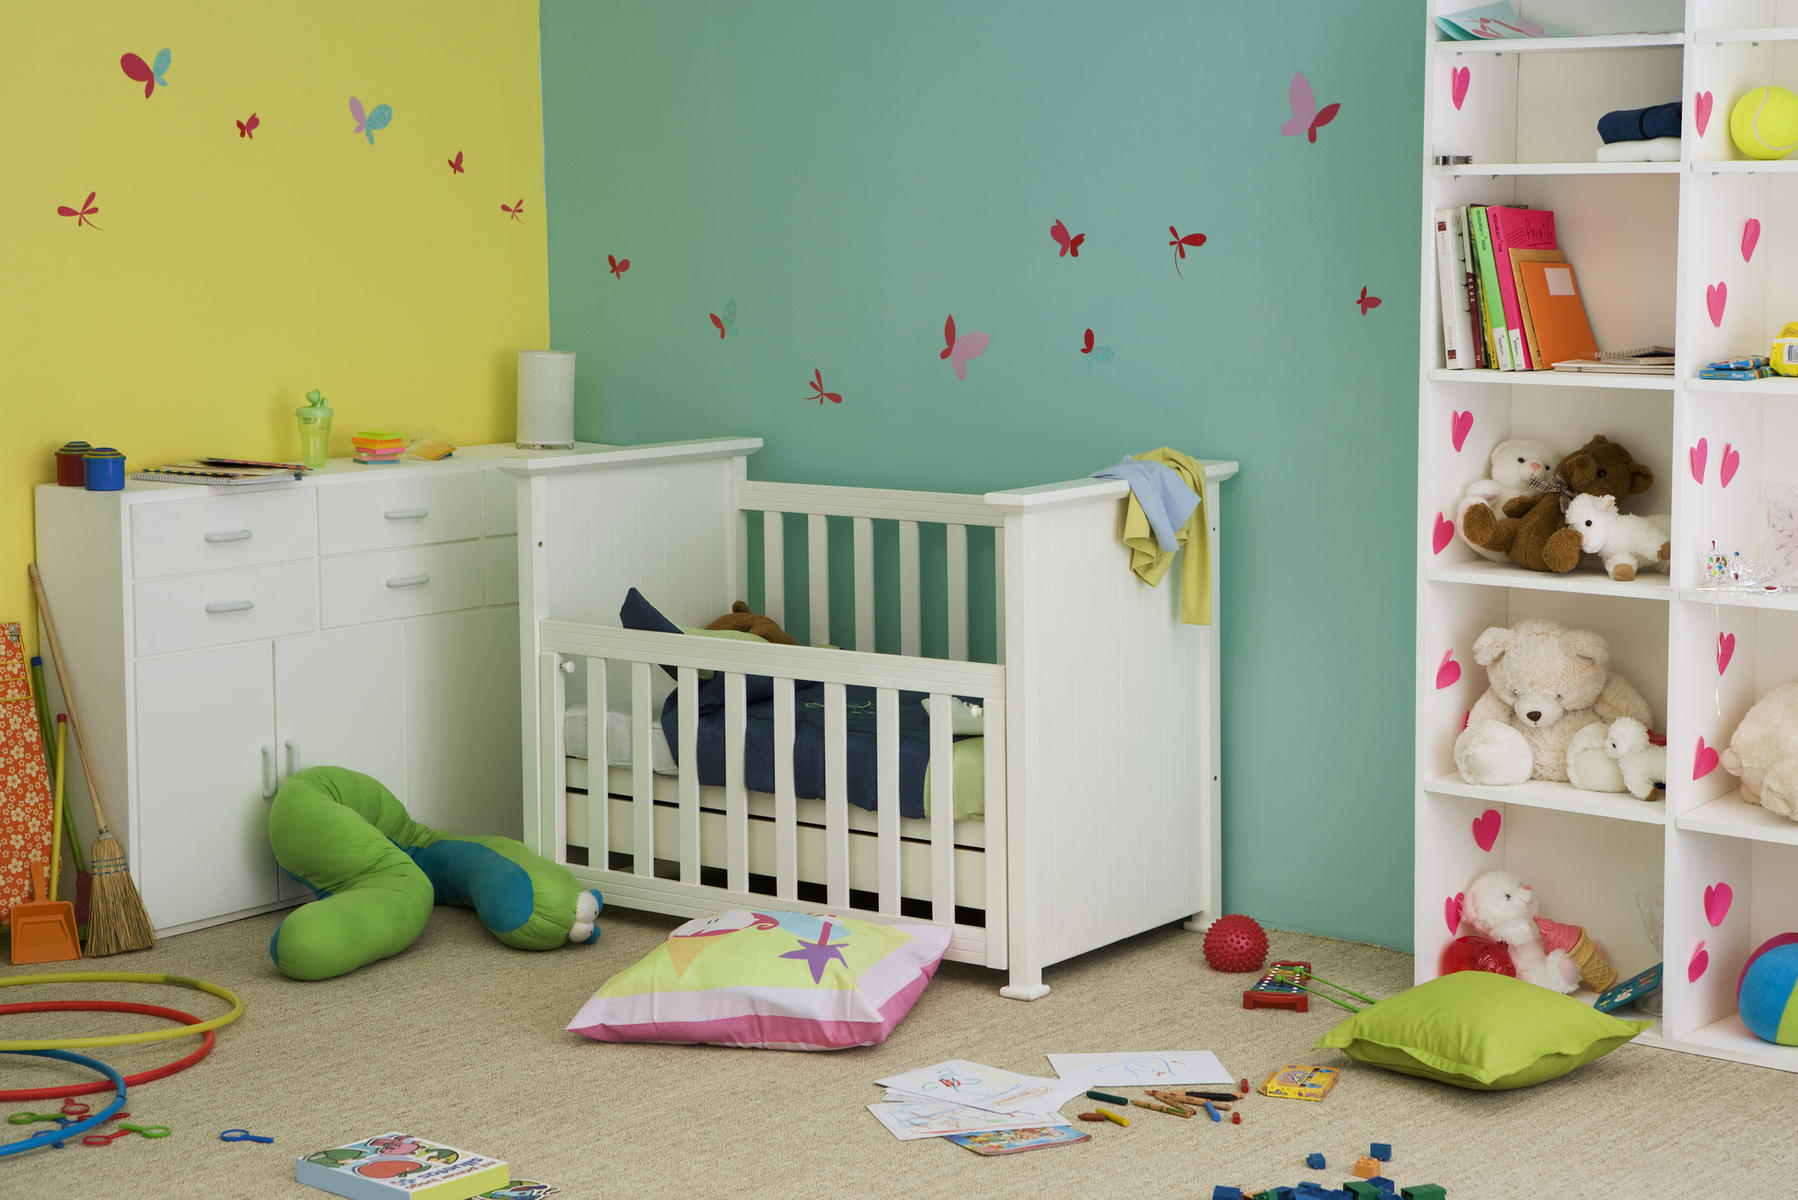 Crib and nursery